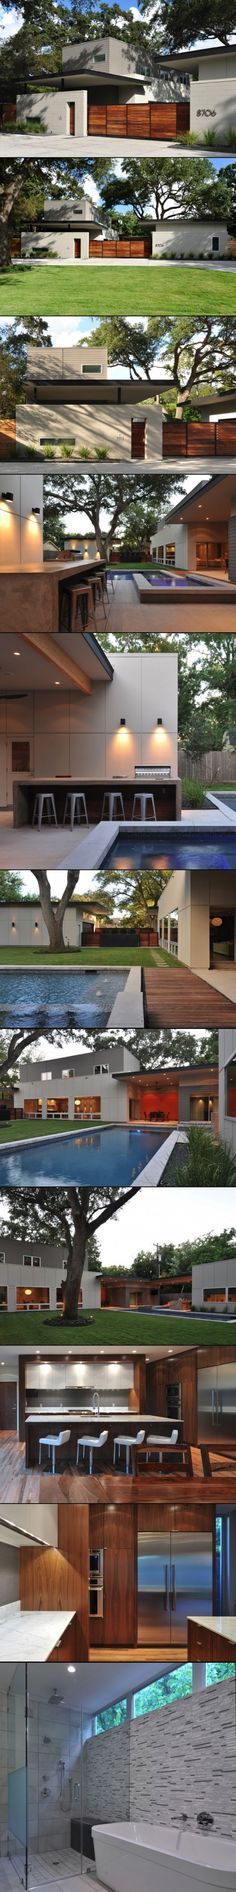 Spring Valley House by StudioMET Houston-based Architectural firm StudioMET has designed the Spring Valley House project . As its name suggests, this two story home is located in Spring Valley Village, an enclave of Houston in Texas, USA.